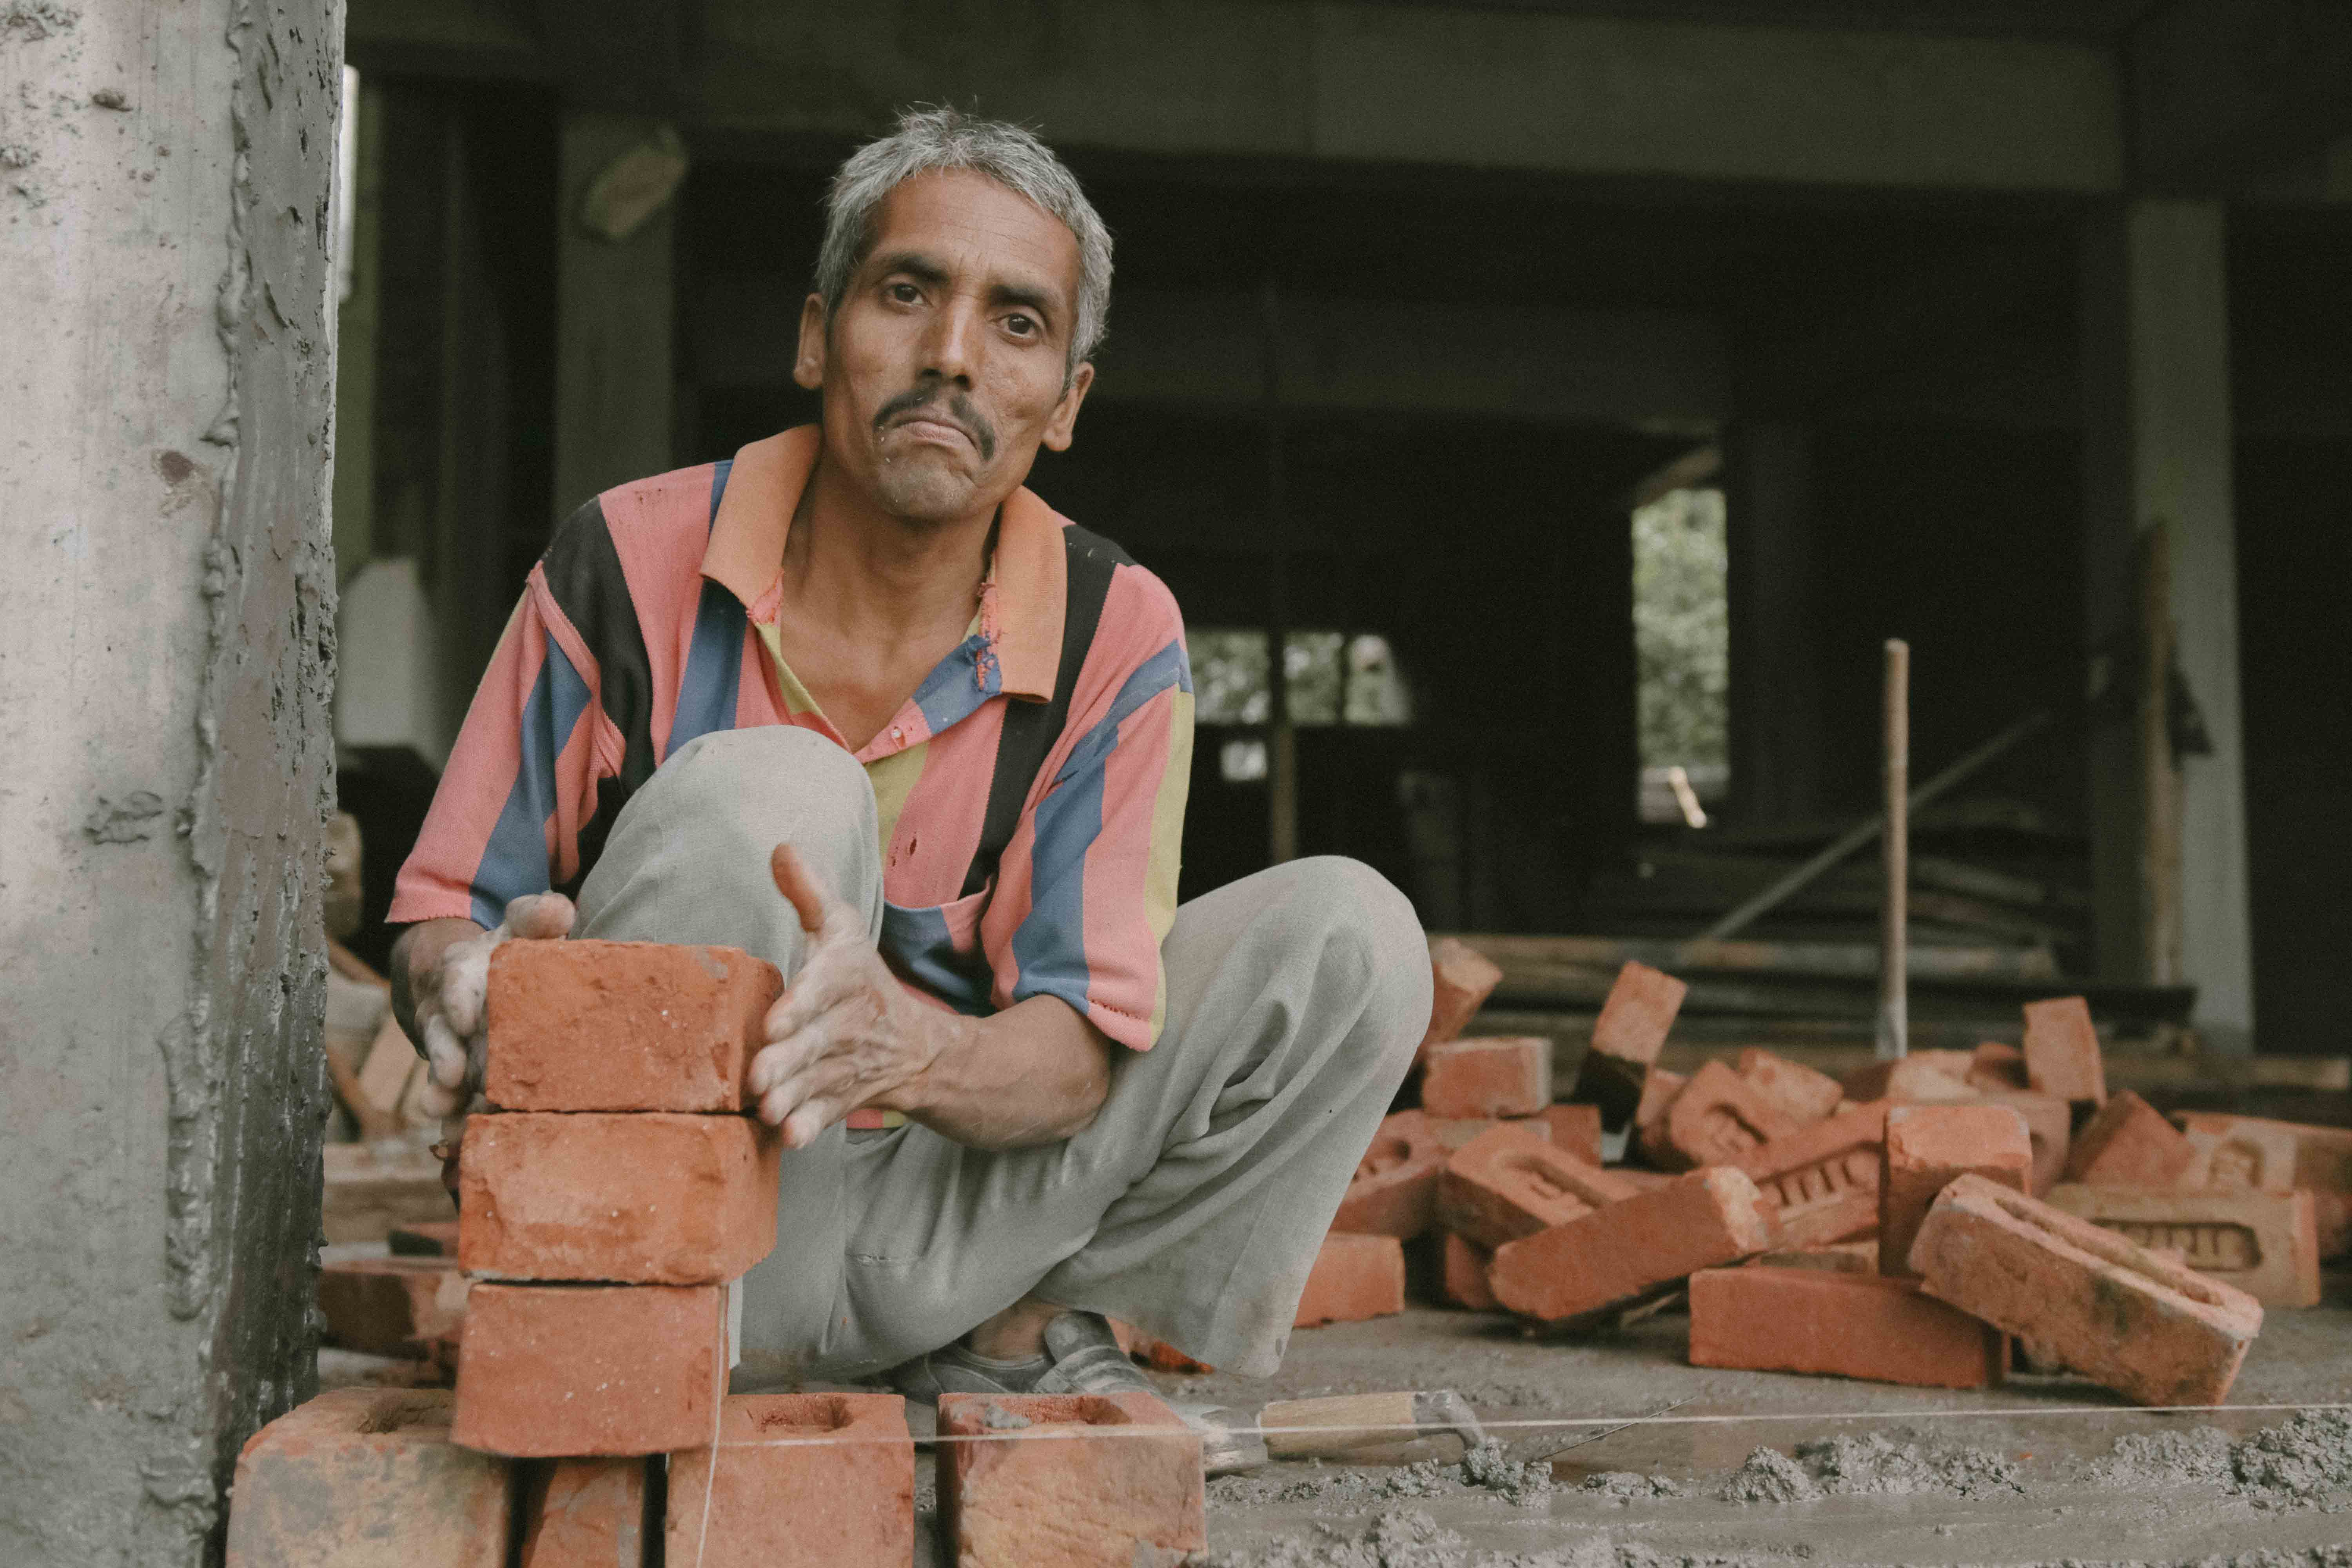 Photo of a man with a stack of bricks in front of him from India.